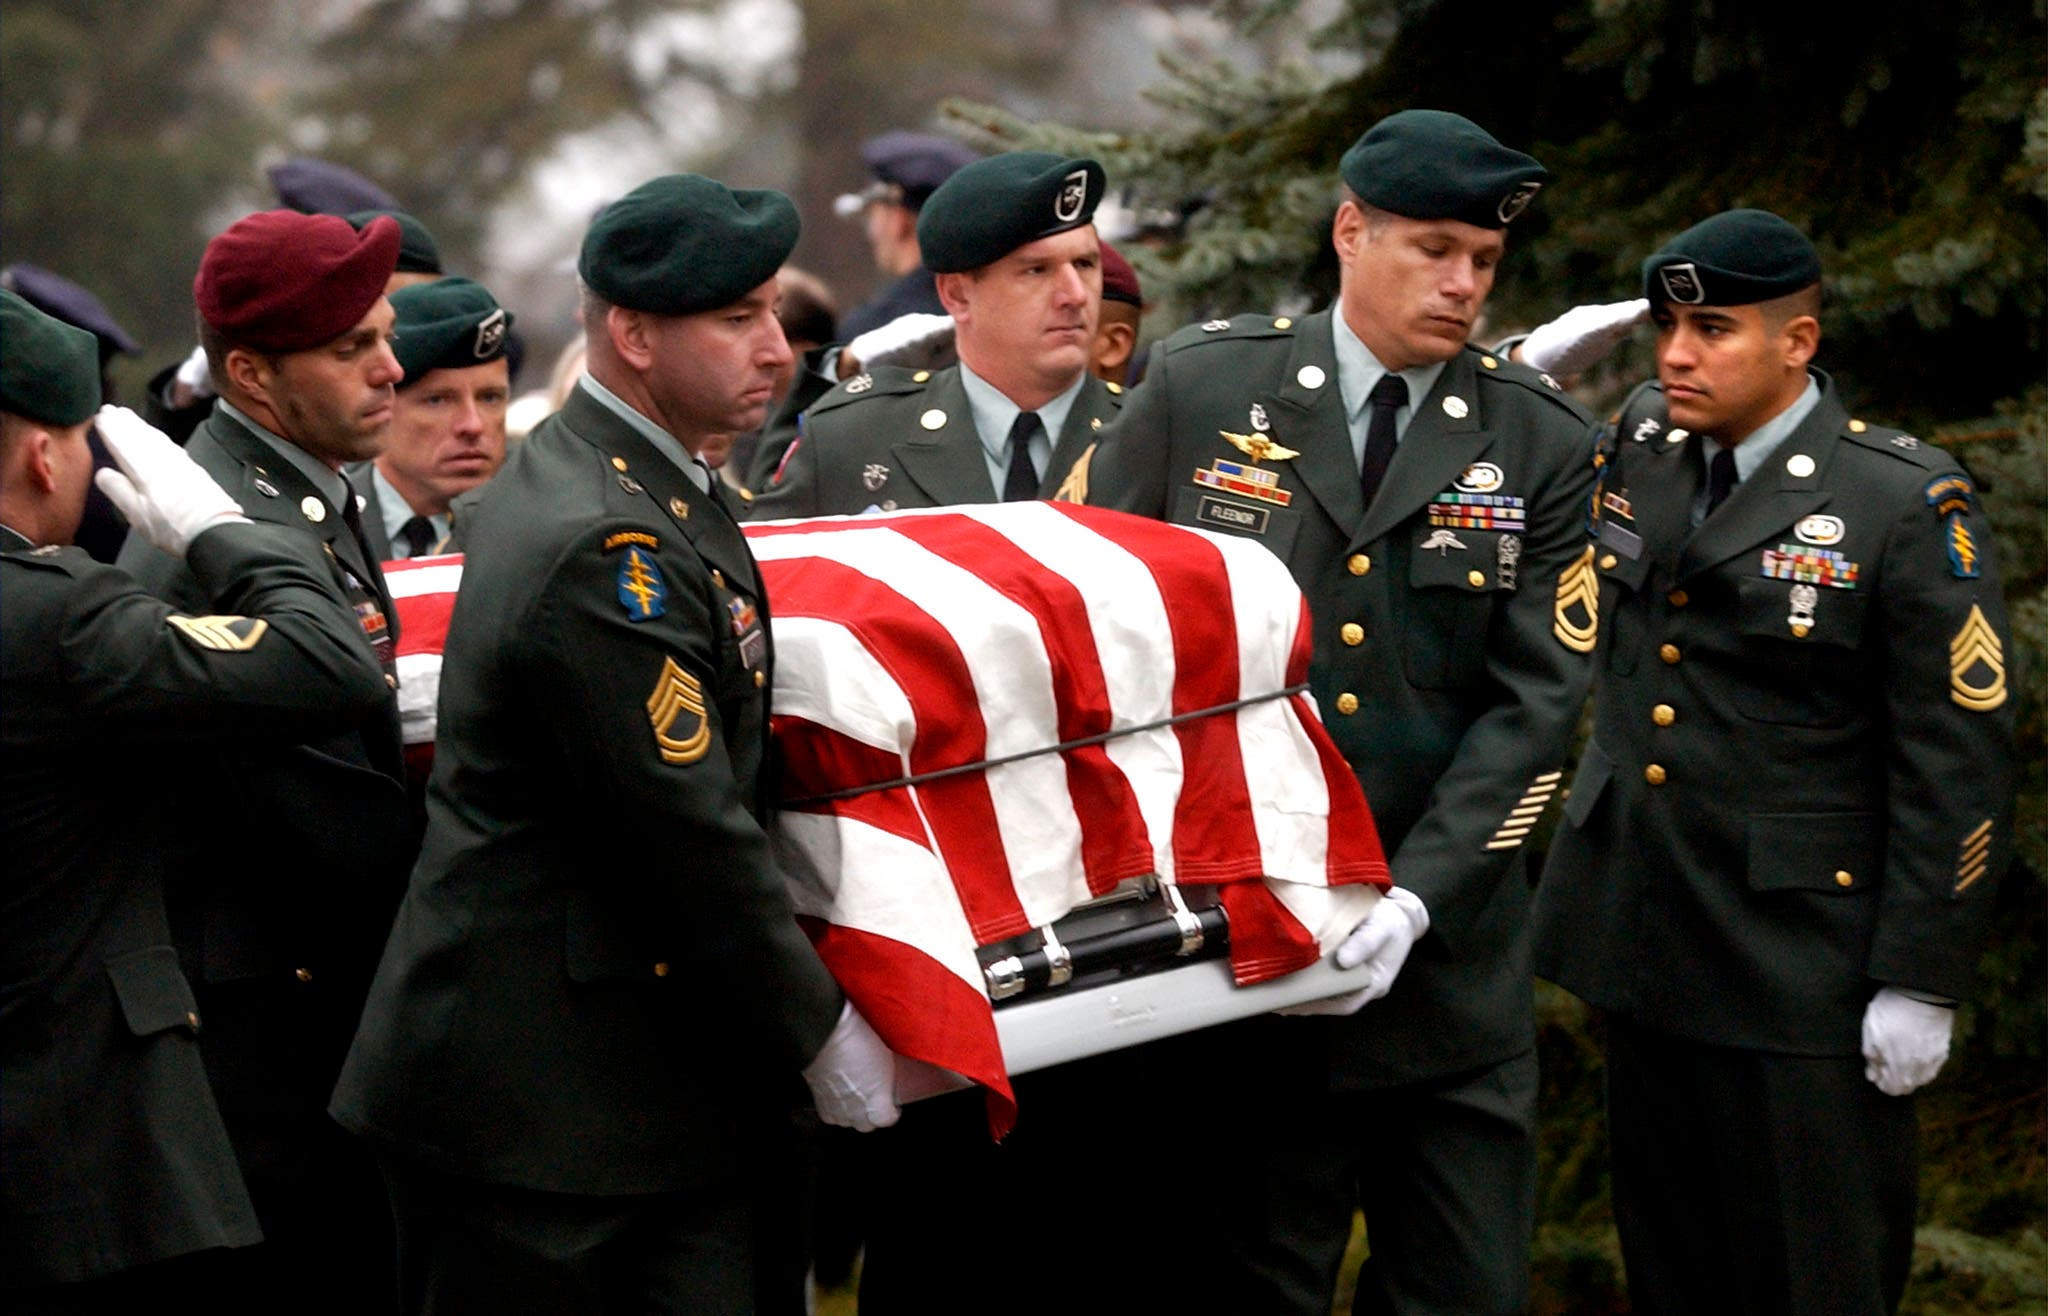 US Army Special Forces soldiers carry the casket containing the body of Sergeant First Class Daniel Petithory at his funeral at St. Mary of the Assumption Church in Petithory's hometown of Cheshire, Massachusetts December 13, 2001. Petithory was killed December 5 when an American bomb landed about 100 yards from their position north of Kandahar, Afghanistan. (Reuters)